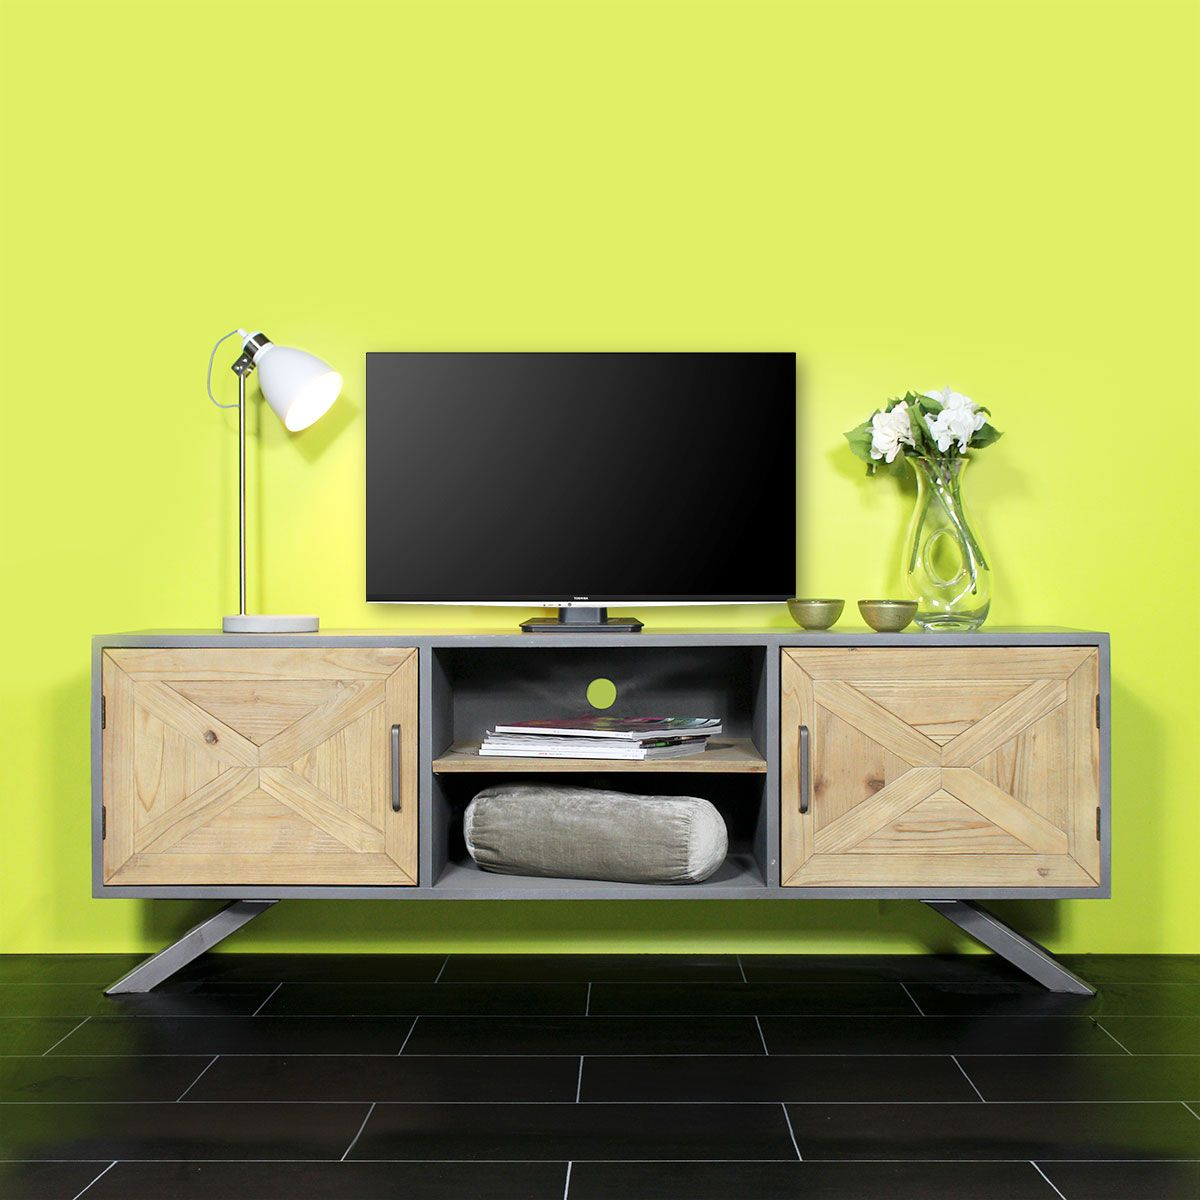 Meuble Tv Original - Meuble Tv Original Tvs And Originals[mjhdah]http://braunarchs.com/wp-content/uploads/2017/12/meuble-tv-original-meuble-television-design-excellent-meuble-mural-tv-design-osane-of-meuble-tv-original.jpg